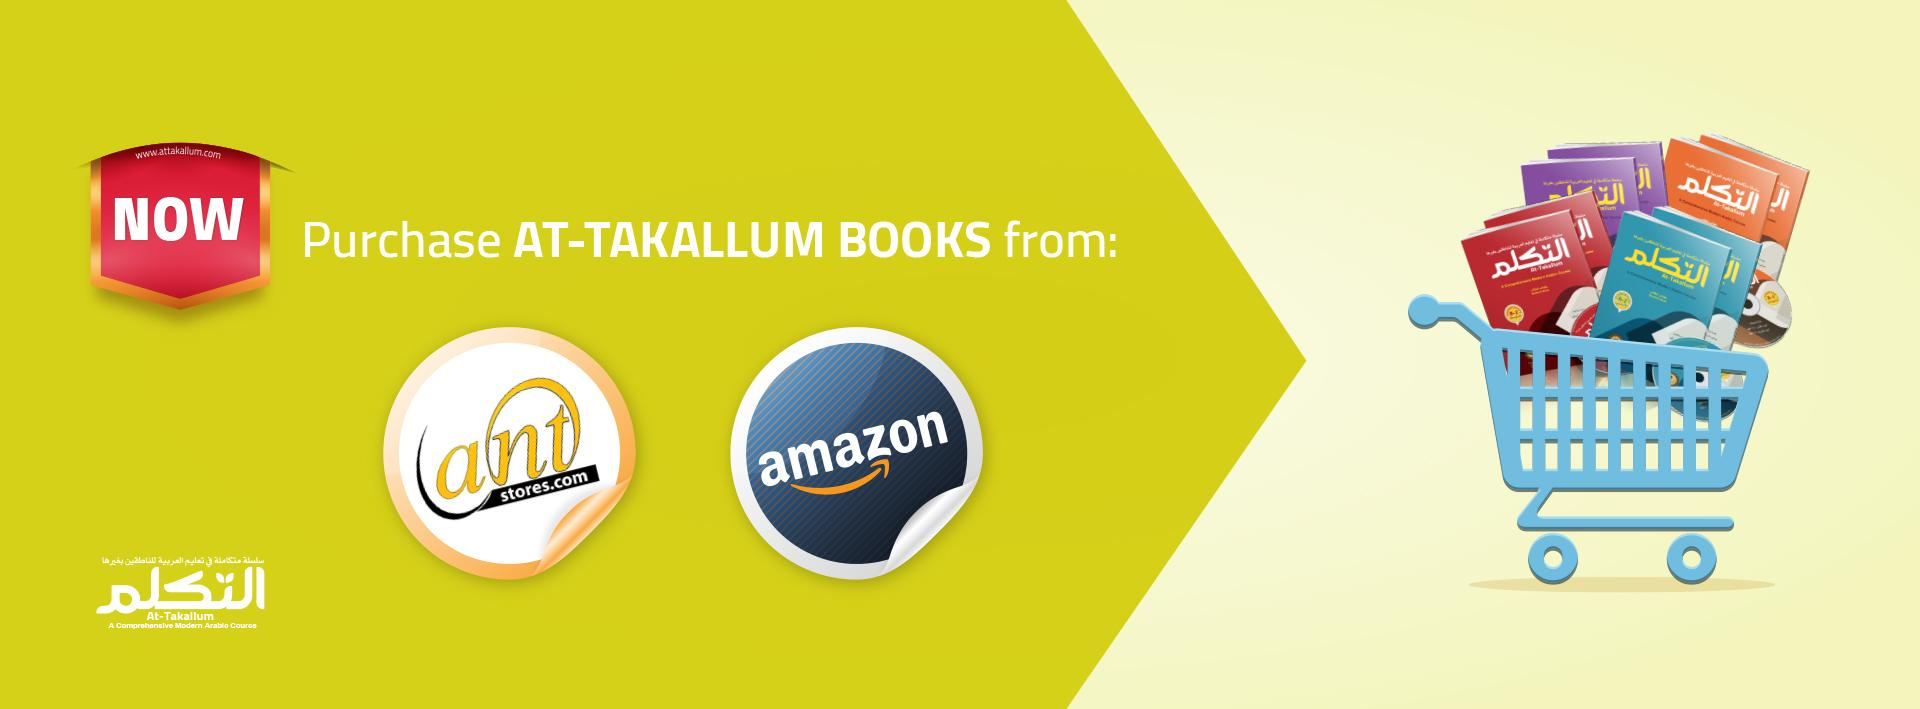 purchase At-takallum books